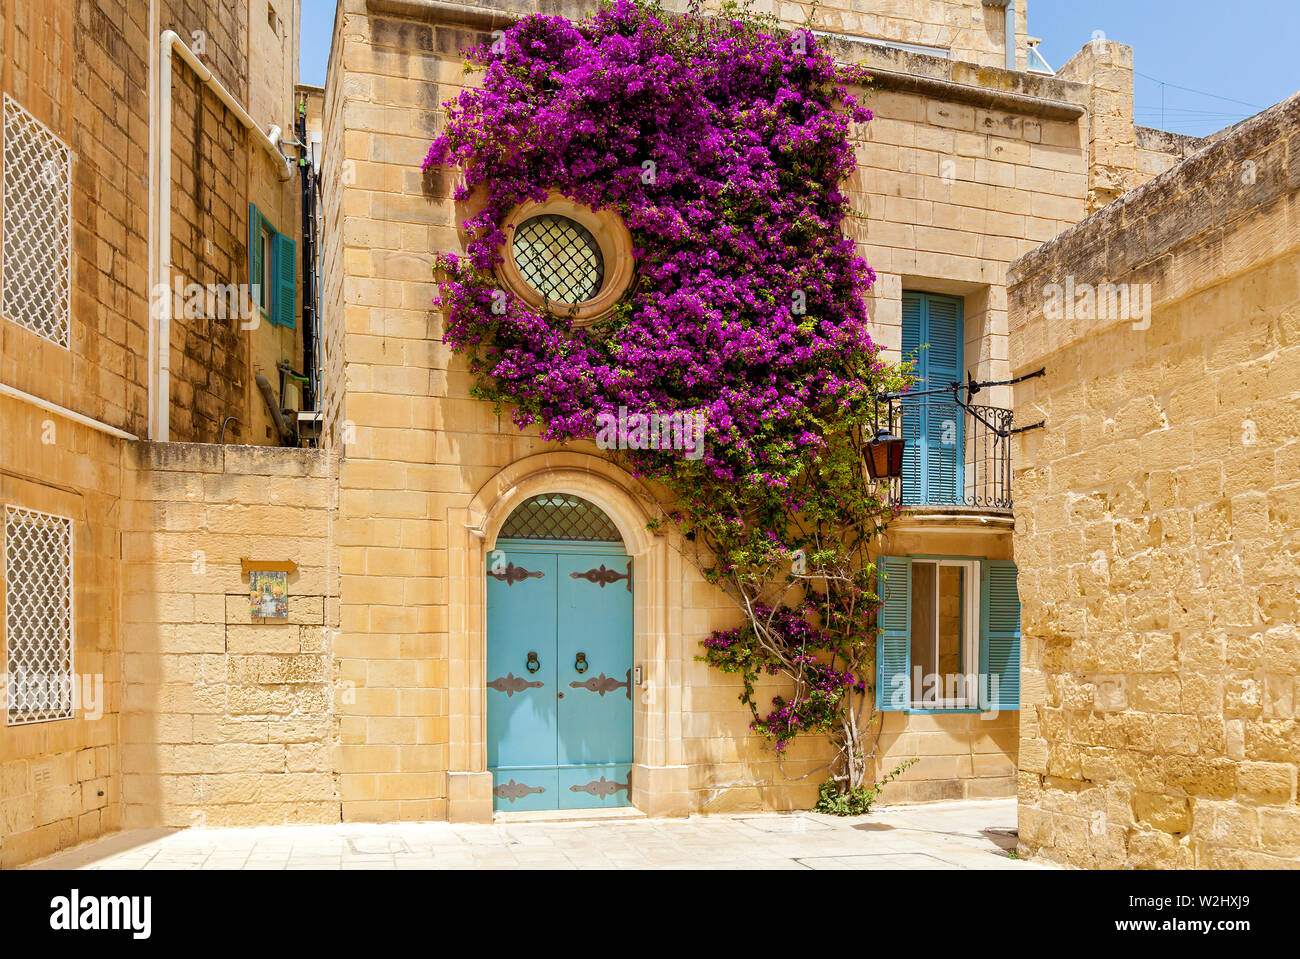 Weaving plants with purple flowers on the facade of a building with a blue wooden door and windows of Mdina, Malta.Sights of the island of Malta - Stock Image